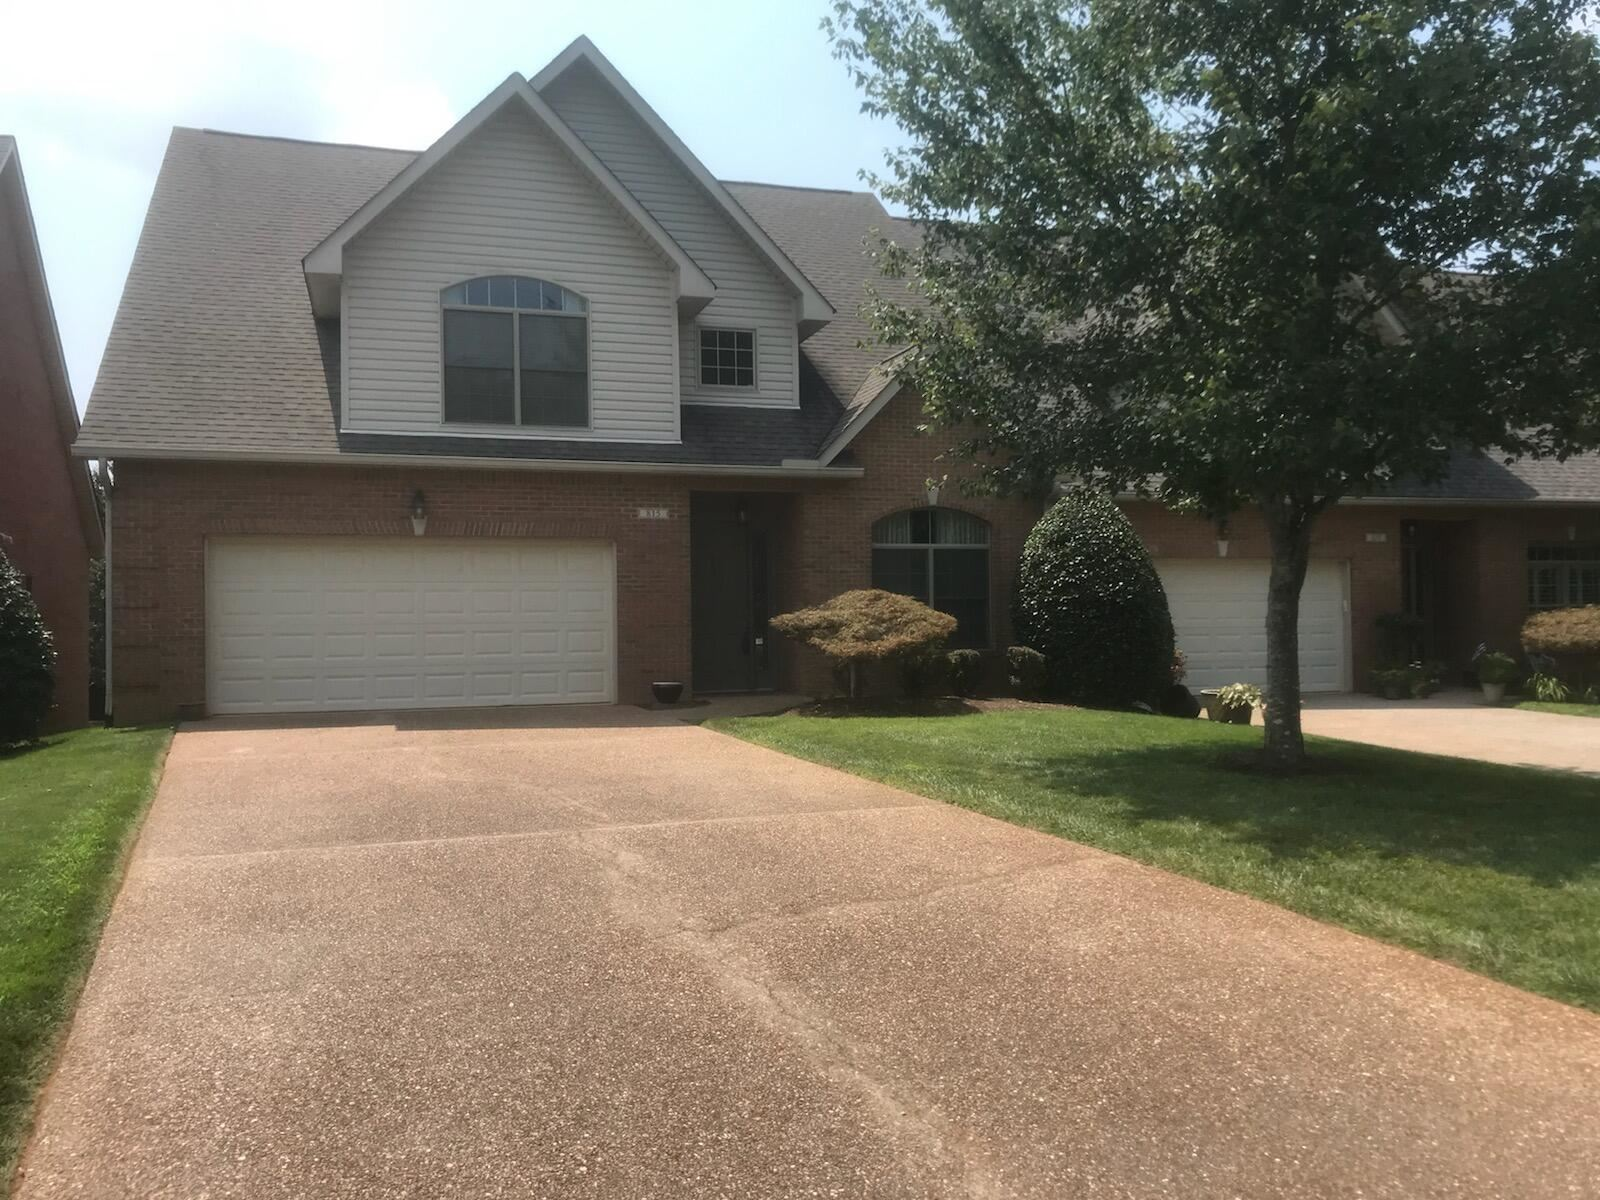 Photo of 815 Racquet Club Way, Knoxville, TN 37923 (MLS # 1161482)